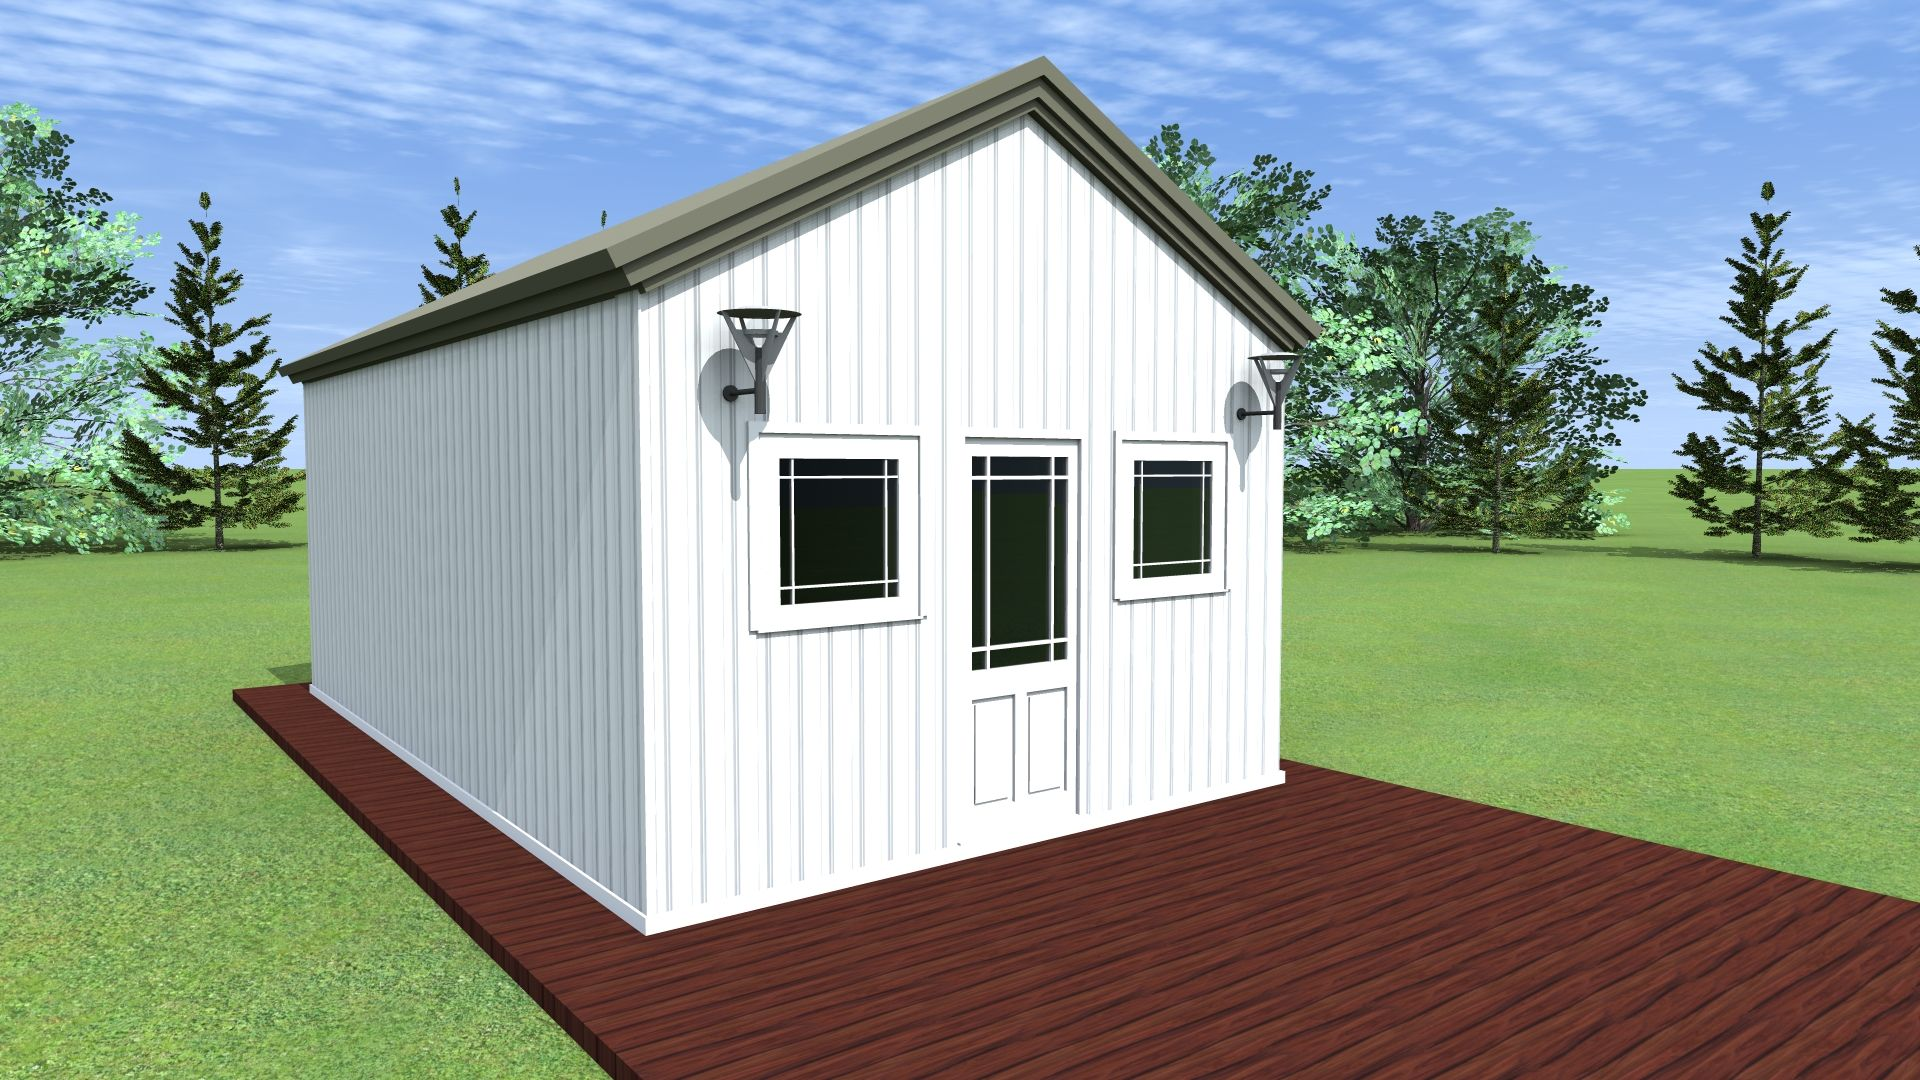 Small Steel Sheds Shed, Metal buildings, Steel sheds